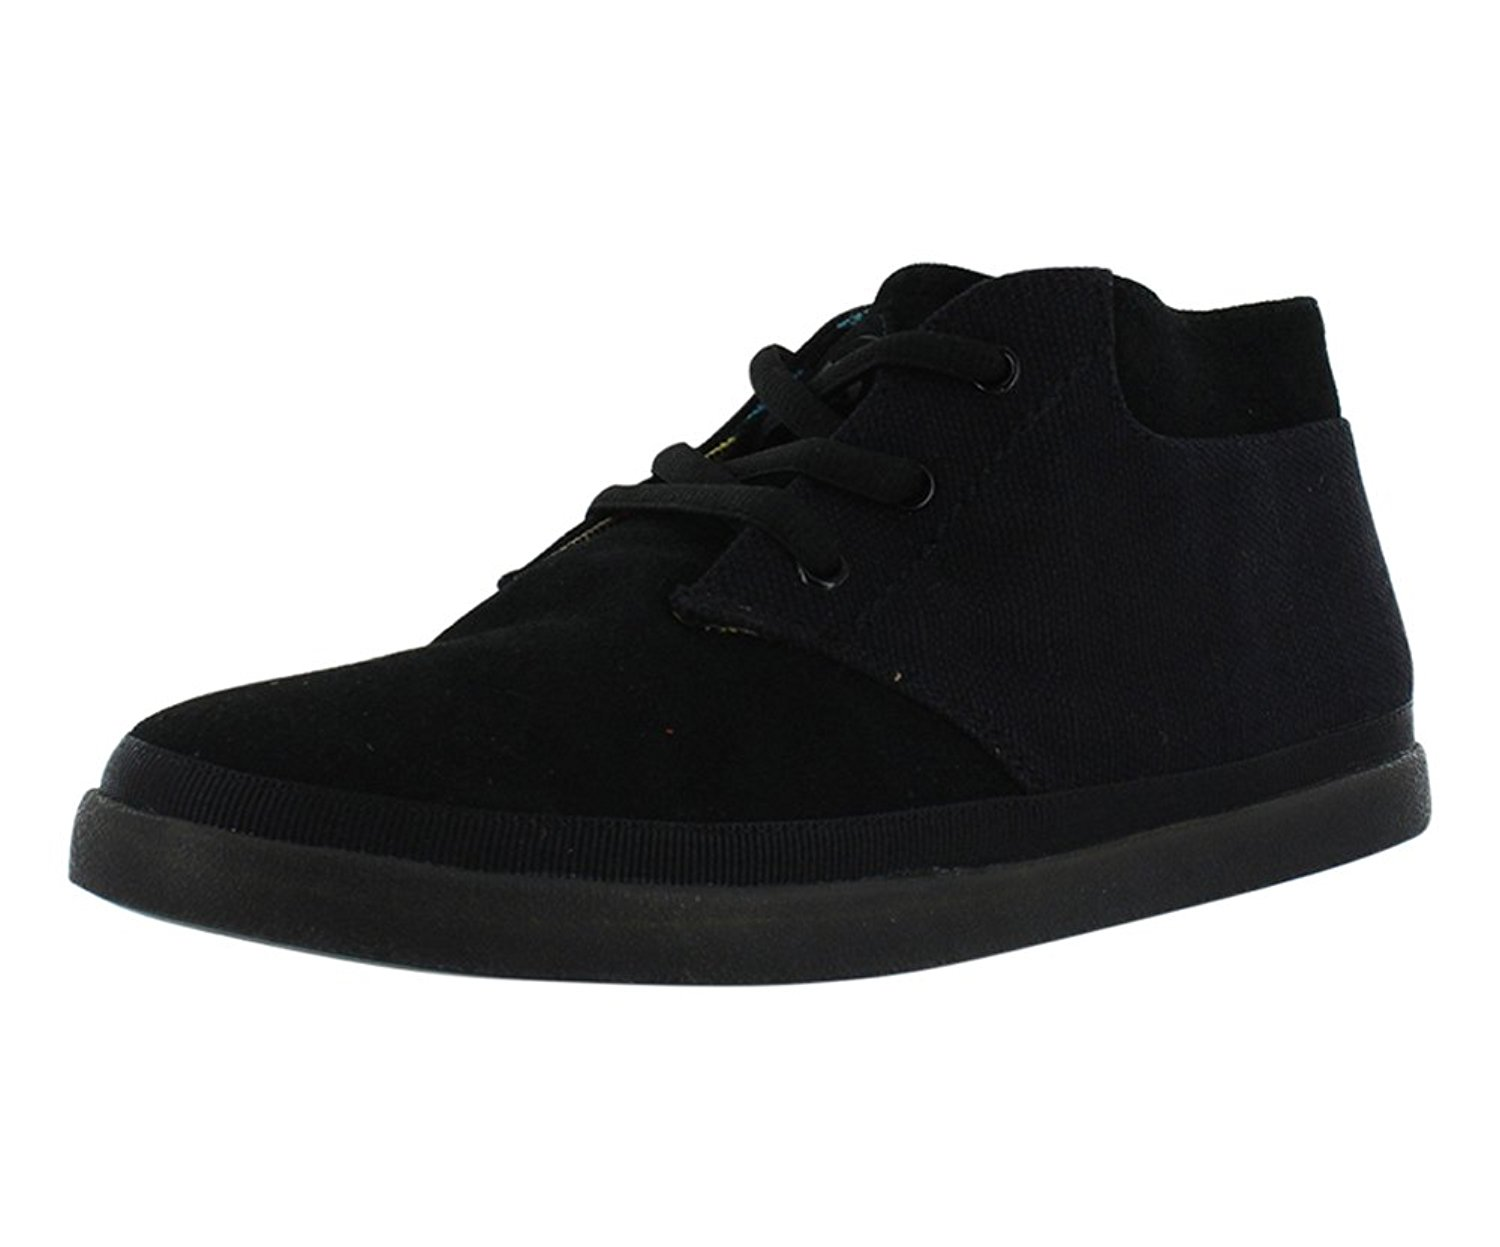 5cb9a11790a6b5 Get Quotations · Ipath Skate Men s Shoes Size